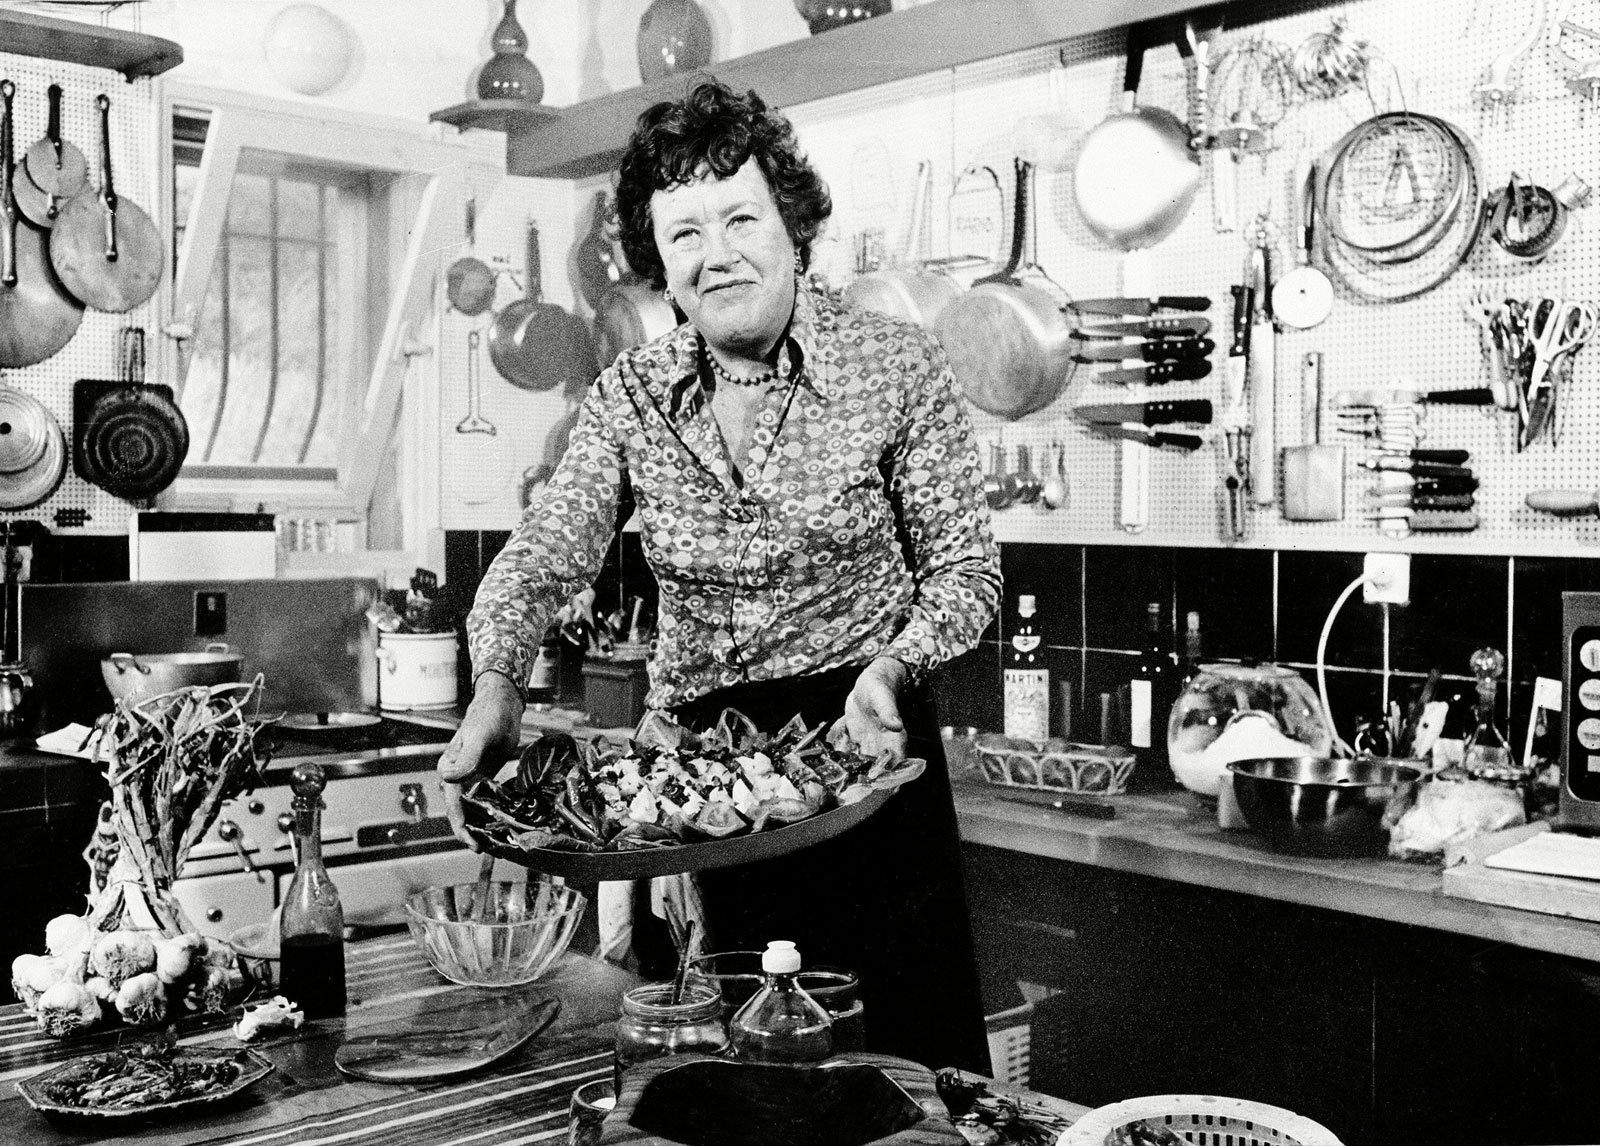 Julia Child | Biography, Cookbooks, & Facts | Britannica